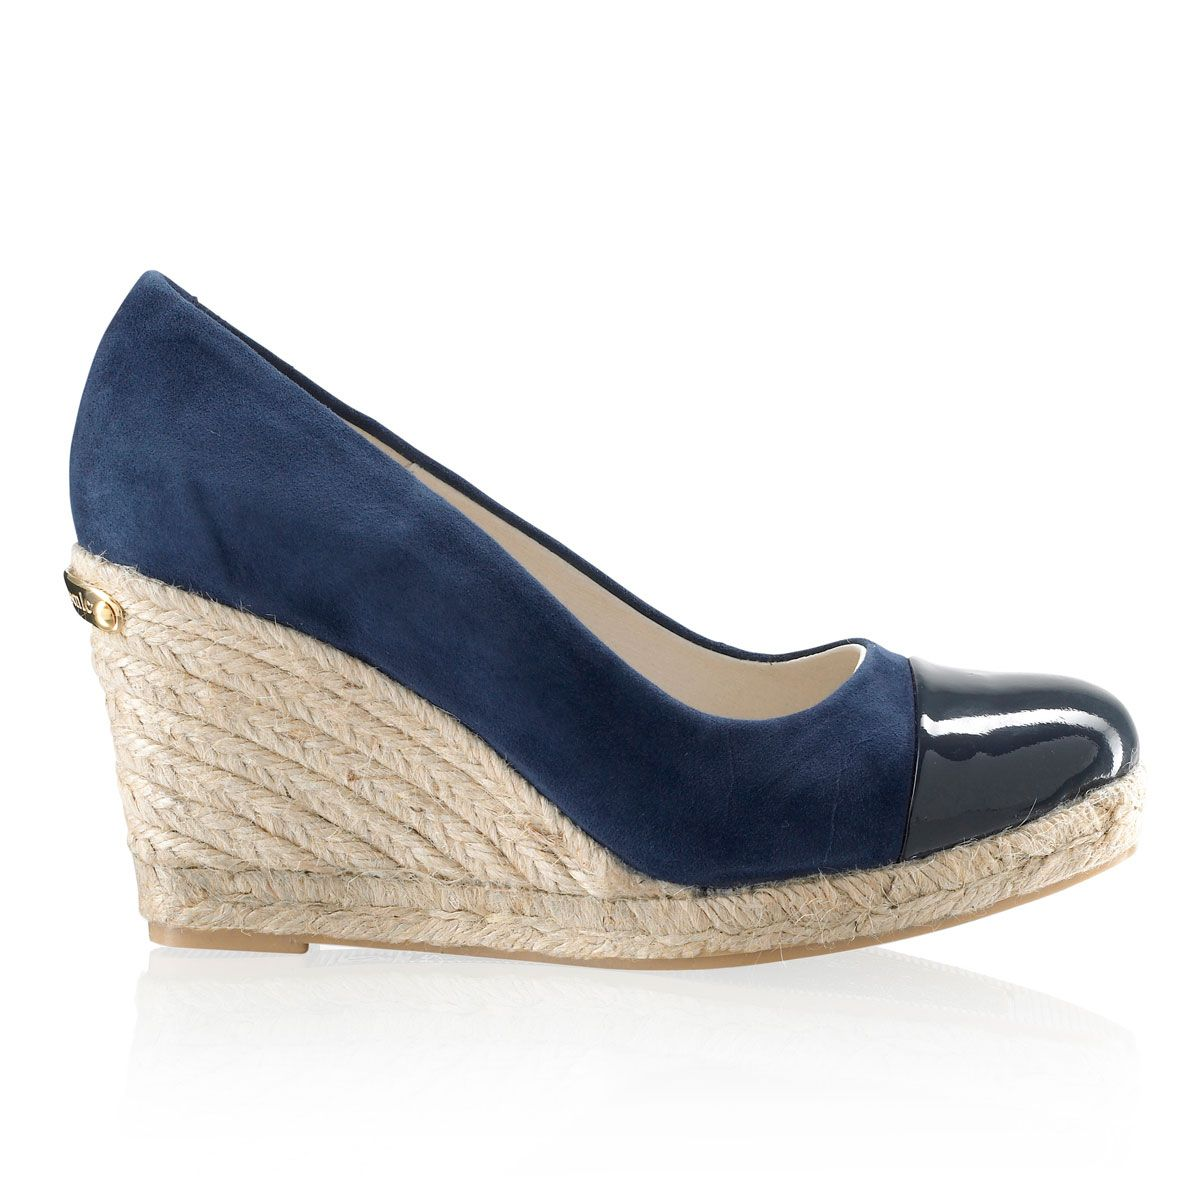 663b31a4722cd Russell and Bromley COCO-POP Toe-Cap Rope Wedge £125.00